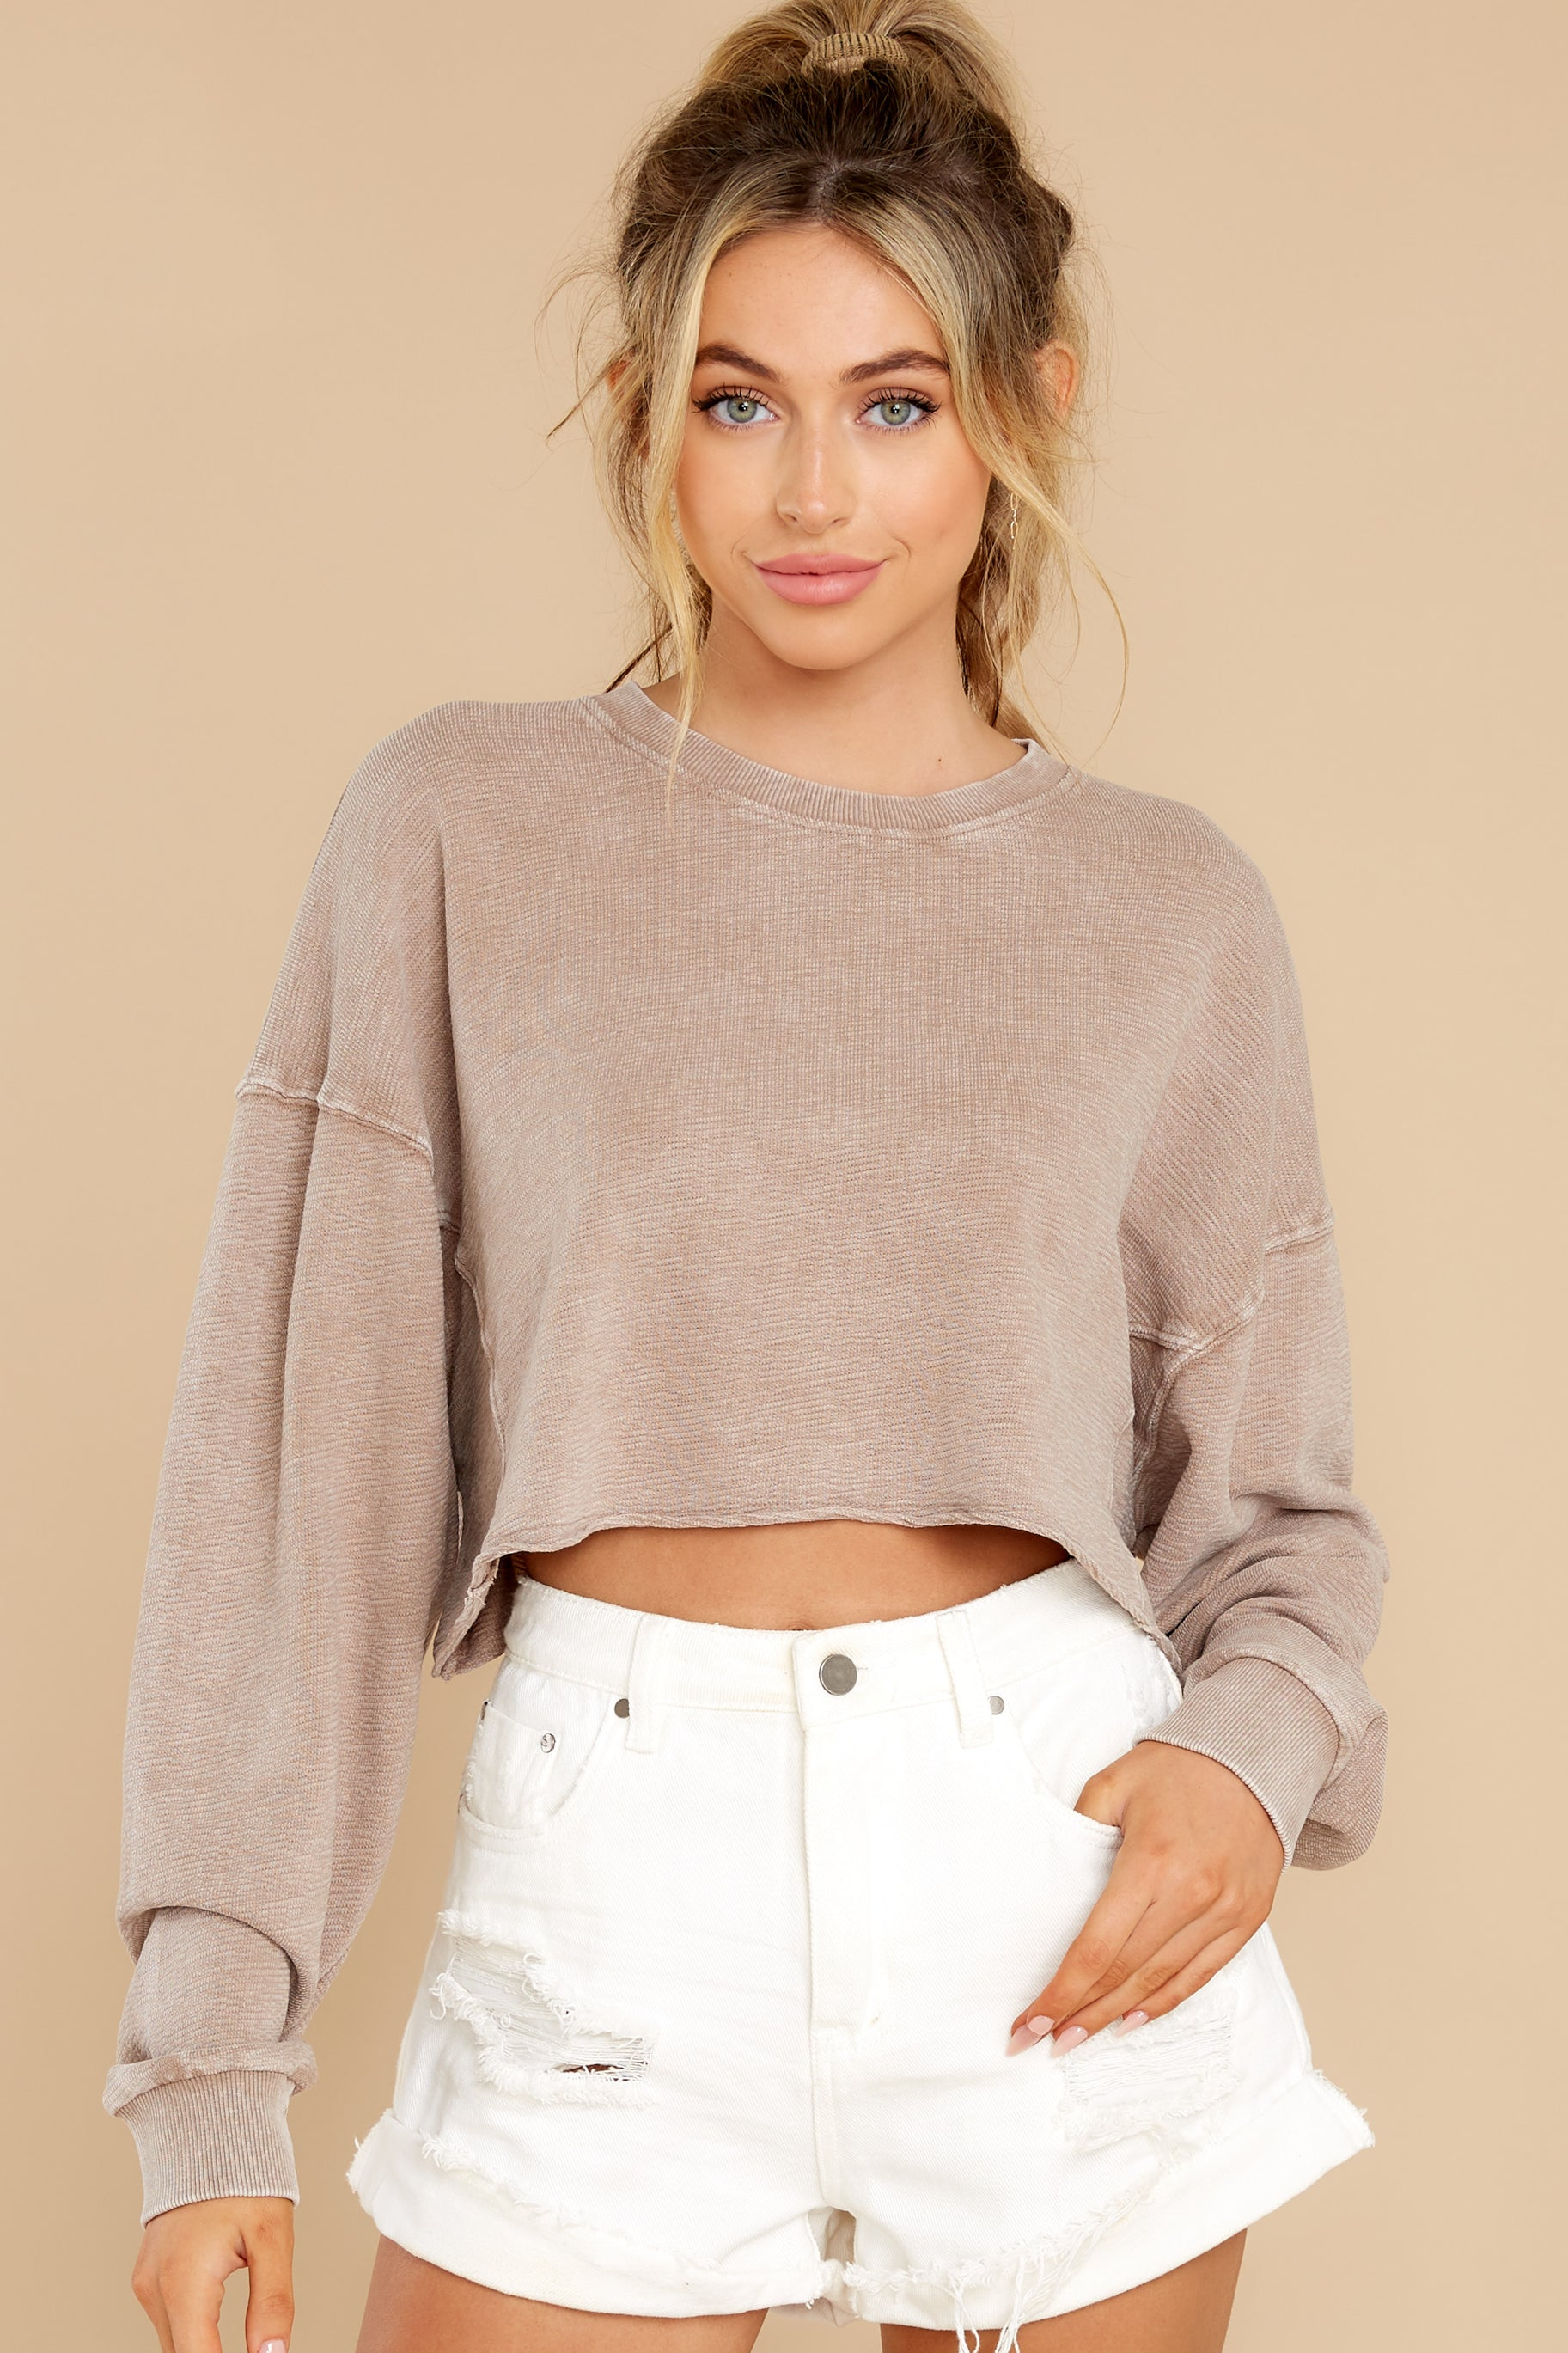 6 Anywhere With You Latte Crop Sweatshirt at reddress.com